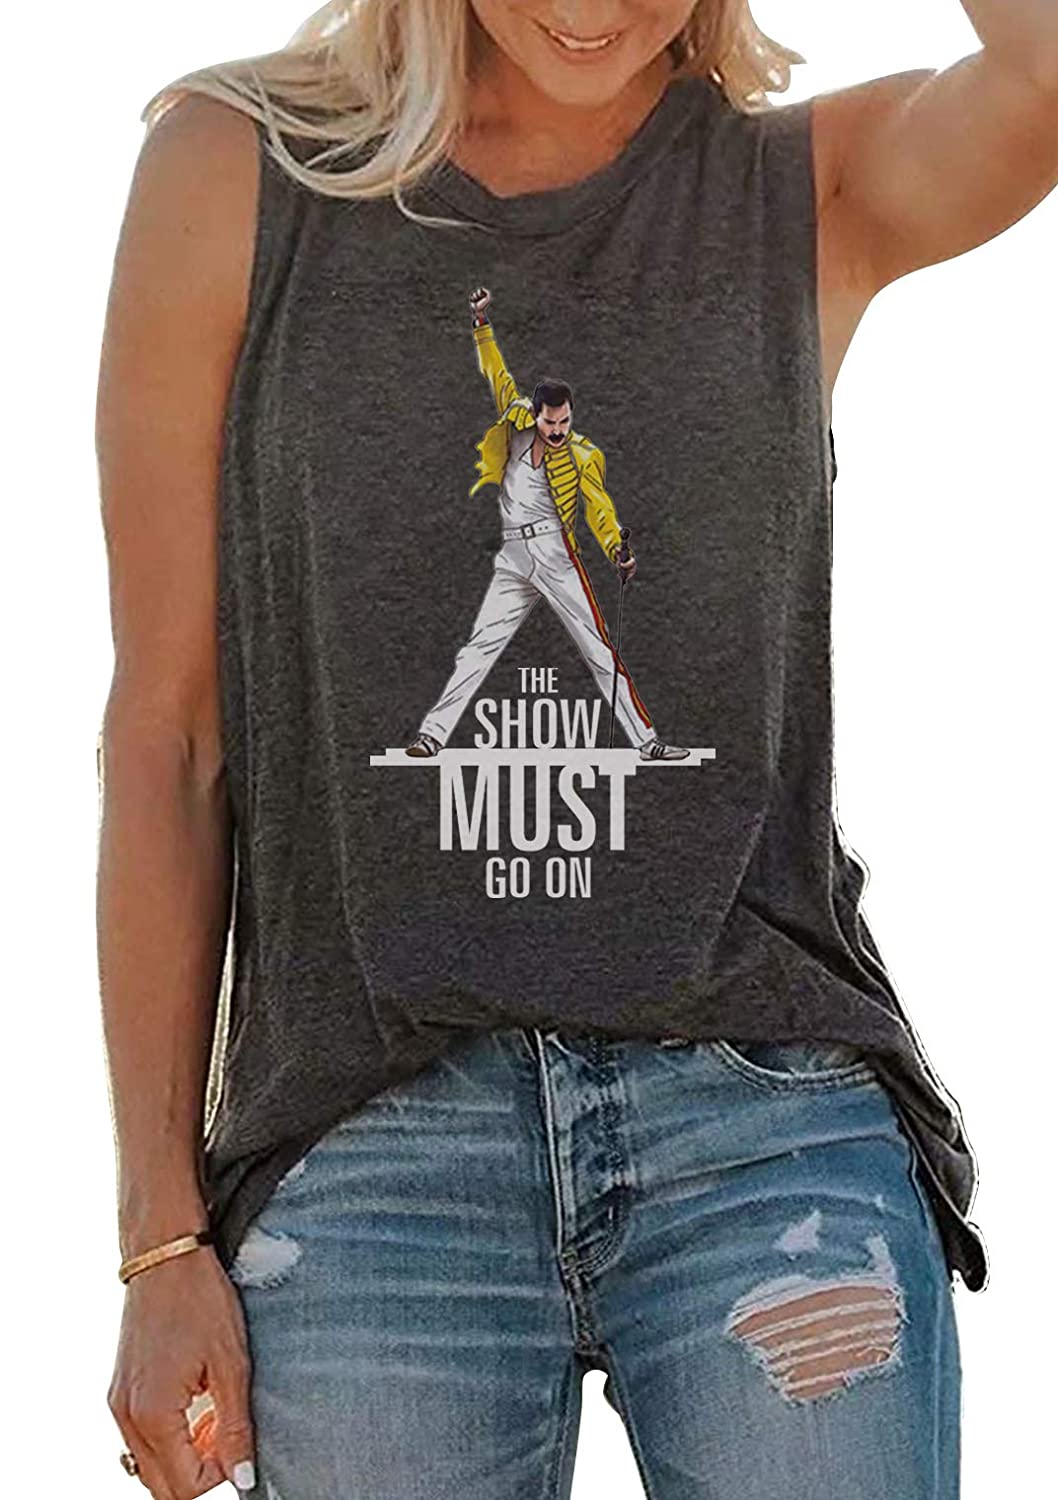 Vintage Queen Shirt The Show Must Go On Summer Cute Freddie Mercury Graphic  Tank Top for Music Lovers